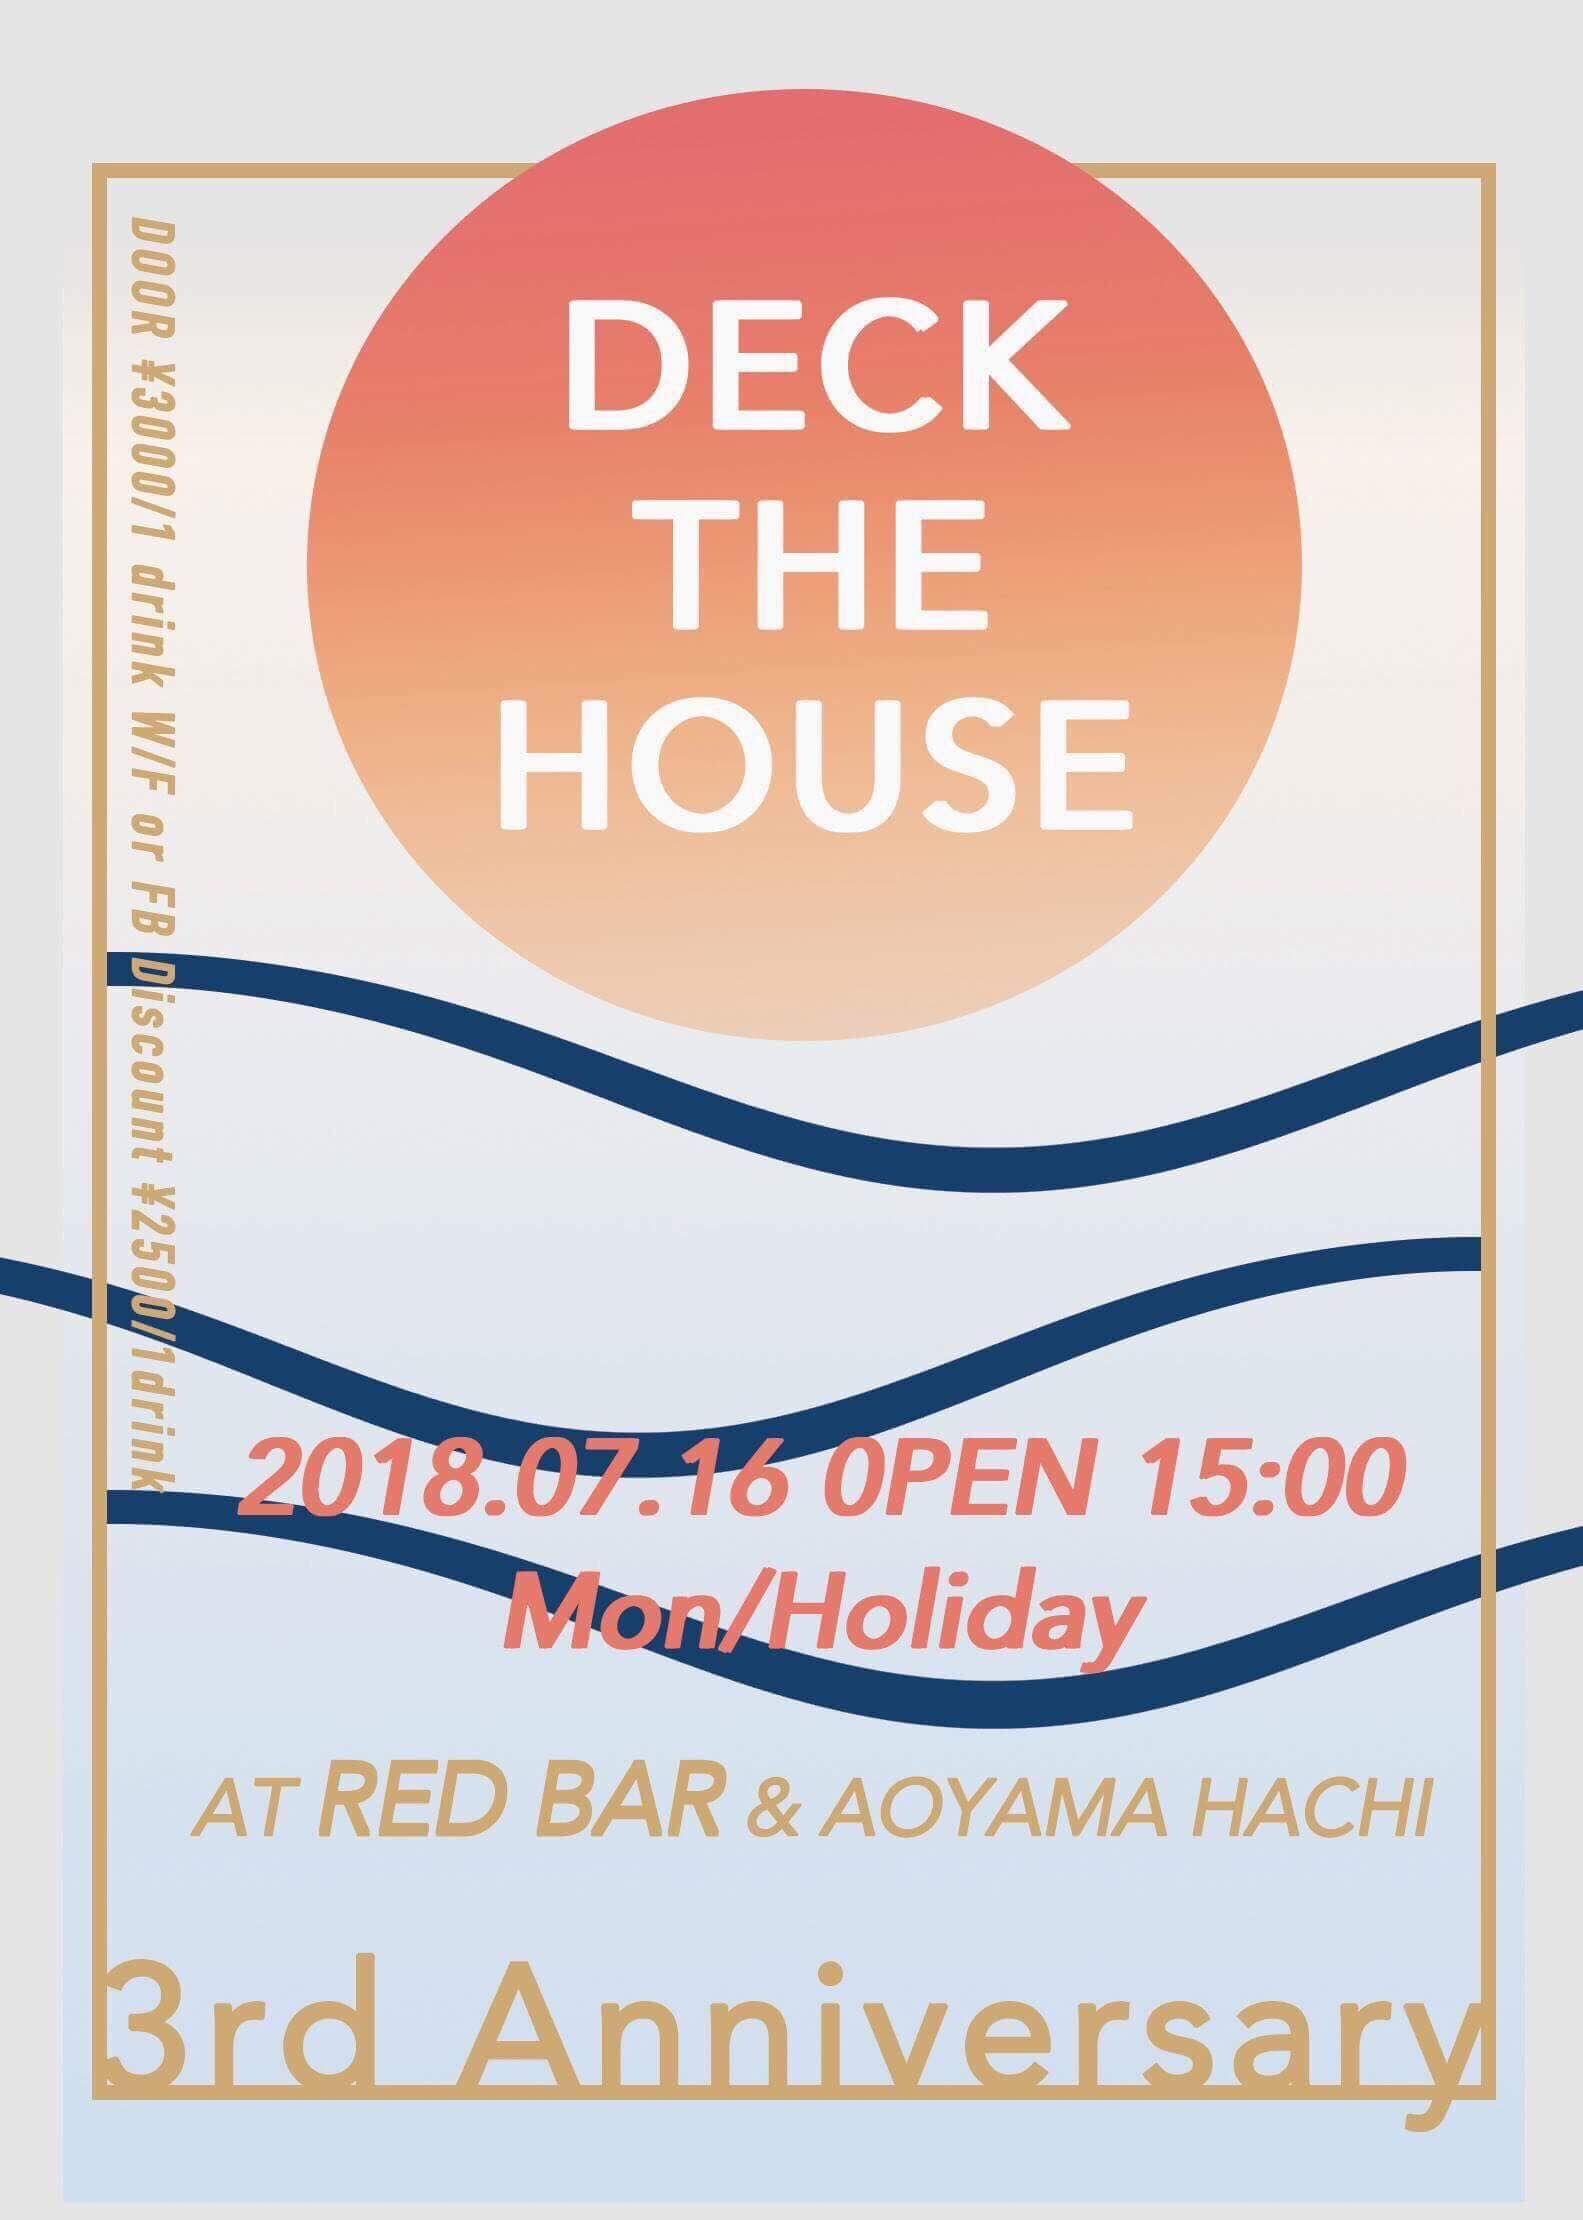 DECK THE HOUSE 3rd Anniversary @ RED BAR & aoyama hachi